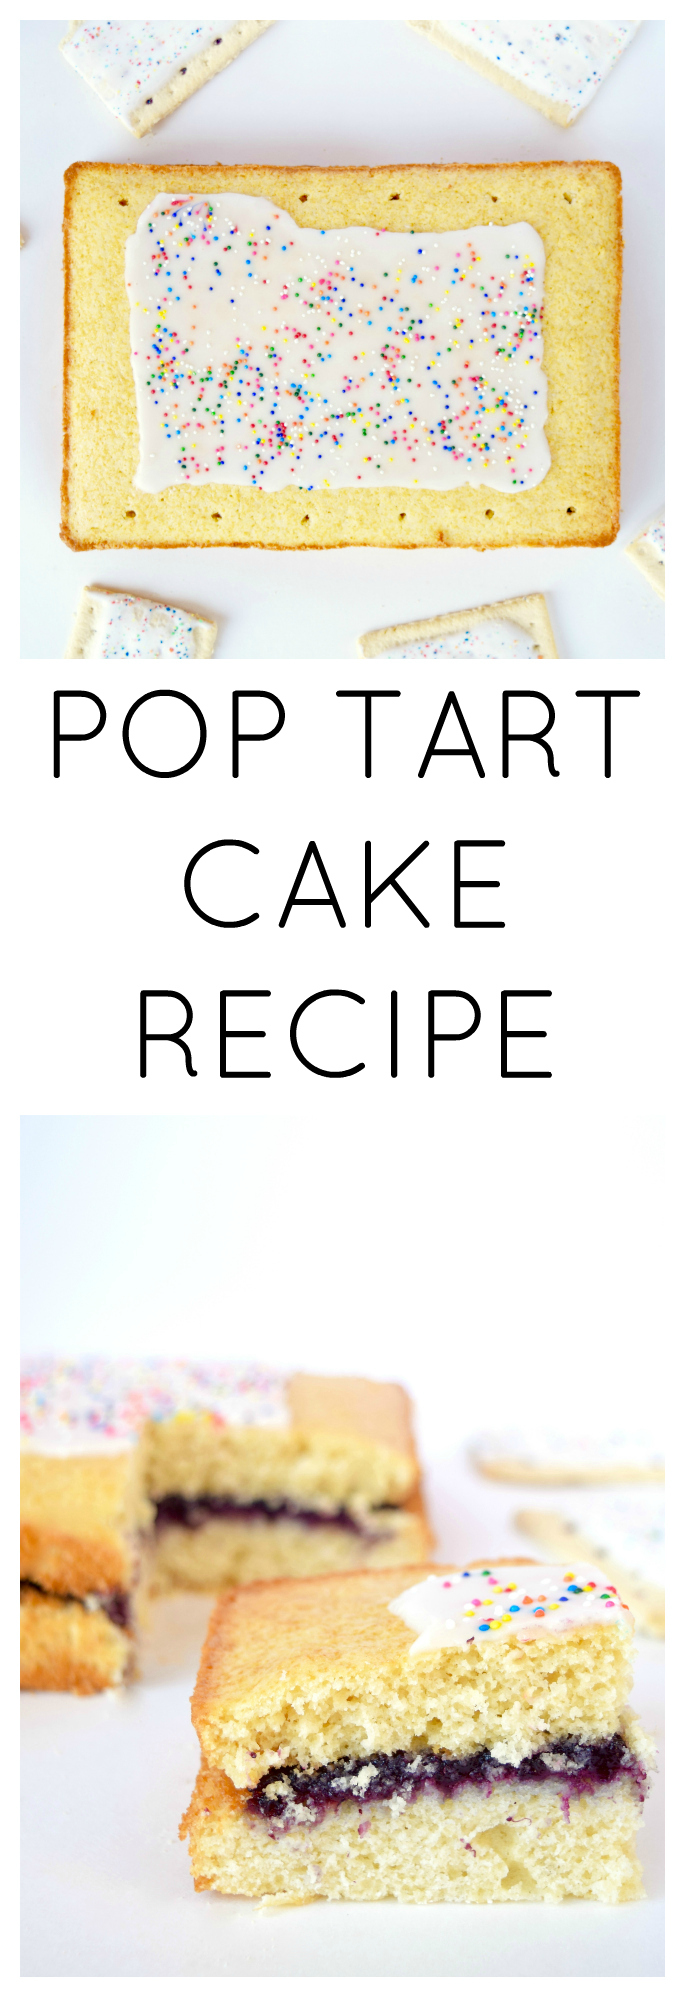 POP TART CAKE RECIPE